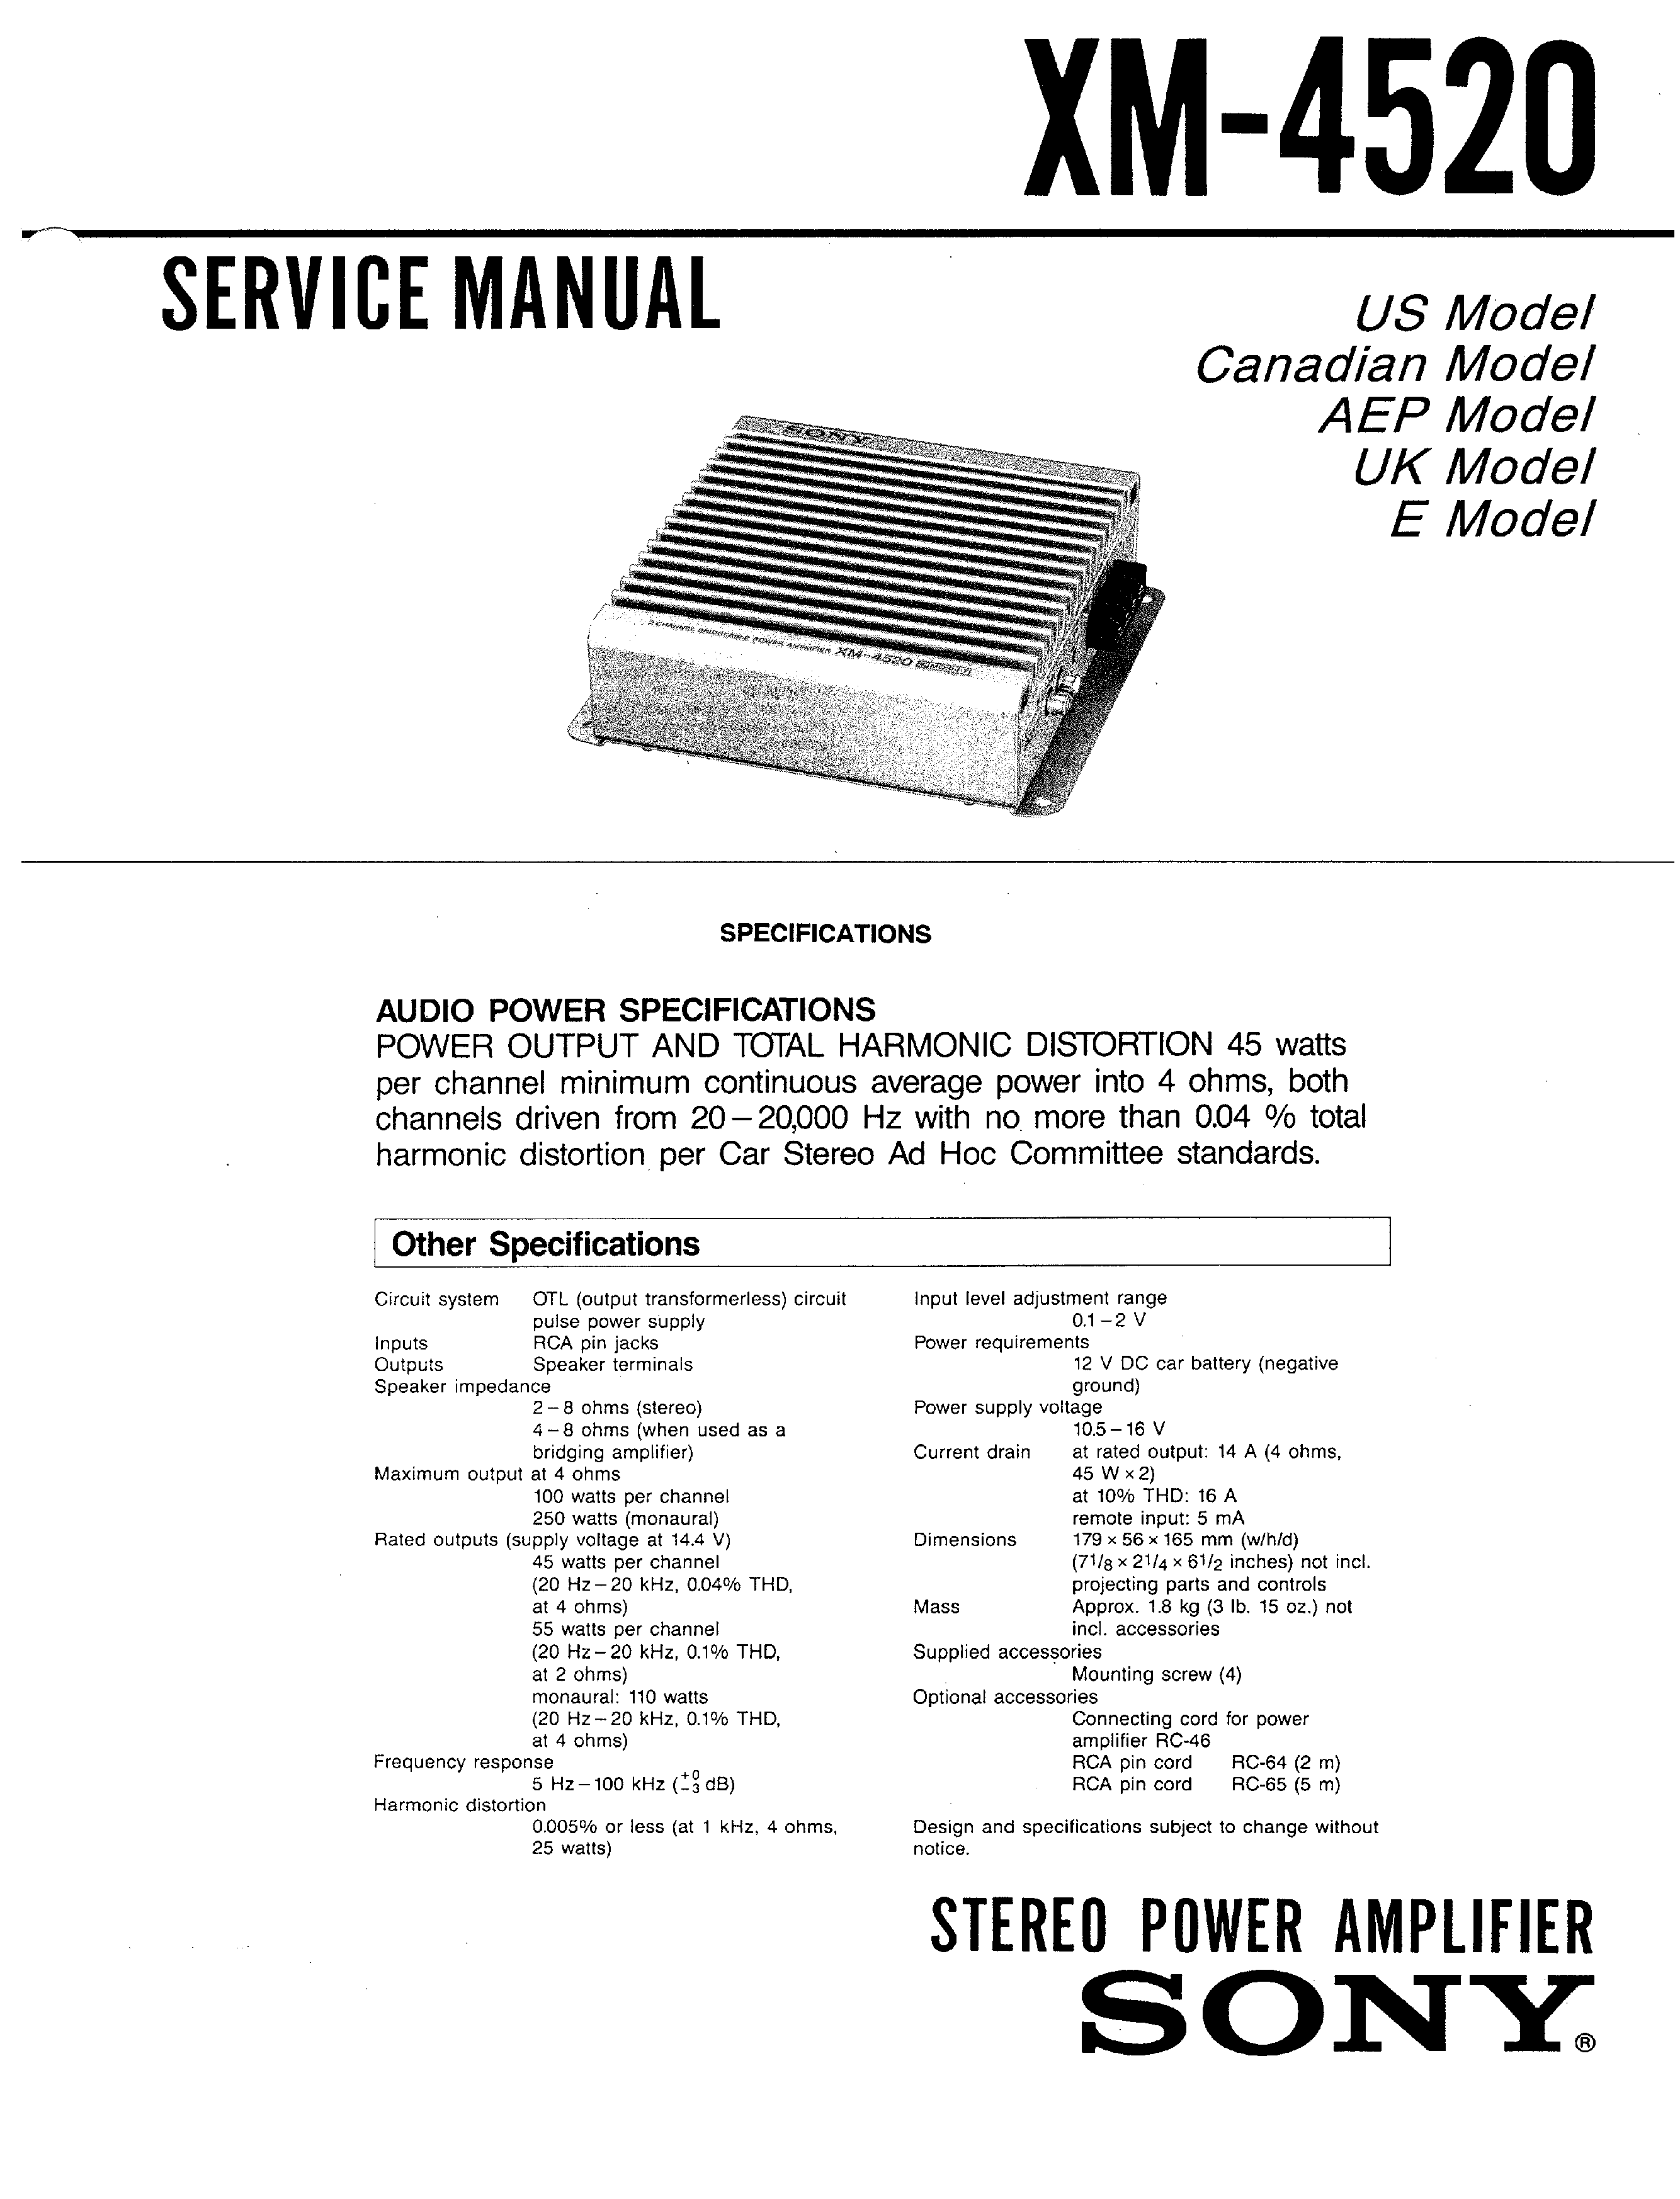 Sony Xm 4520 Service Manual Immediate Download Car Audio Background Image